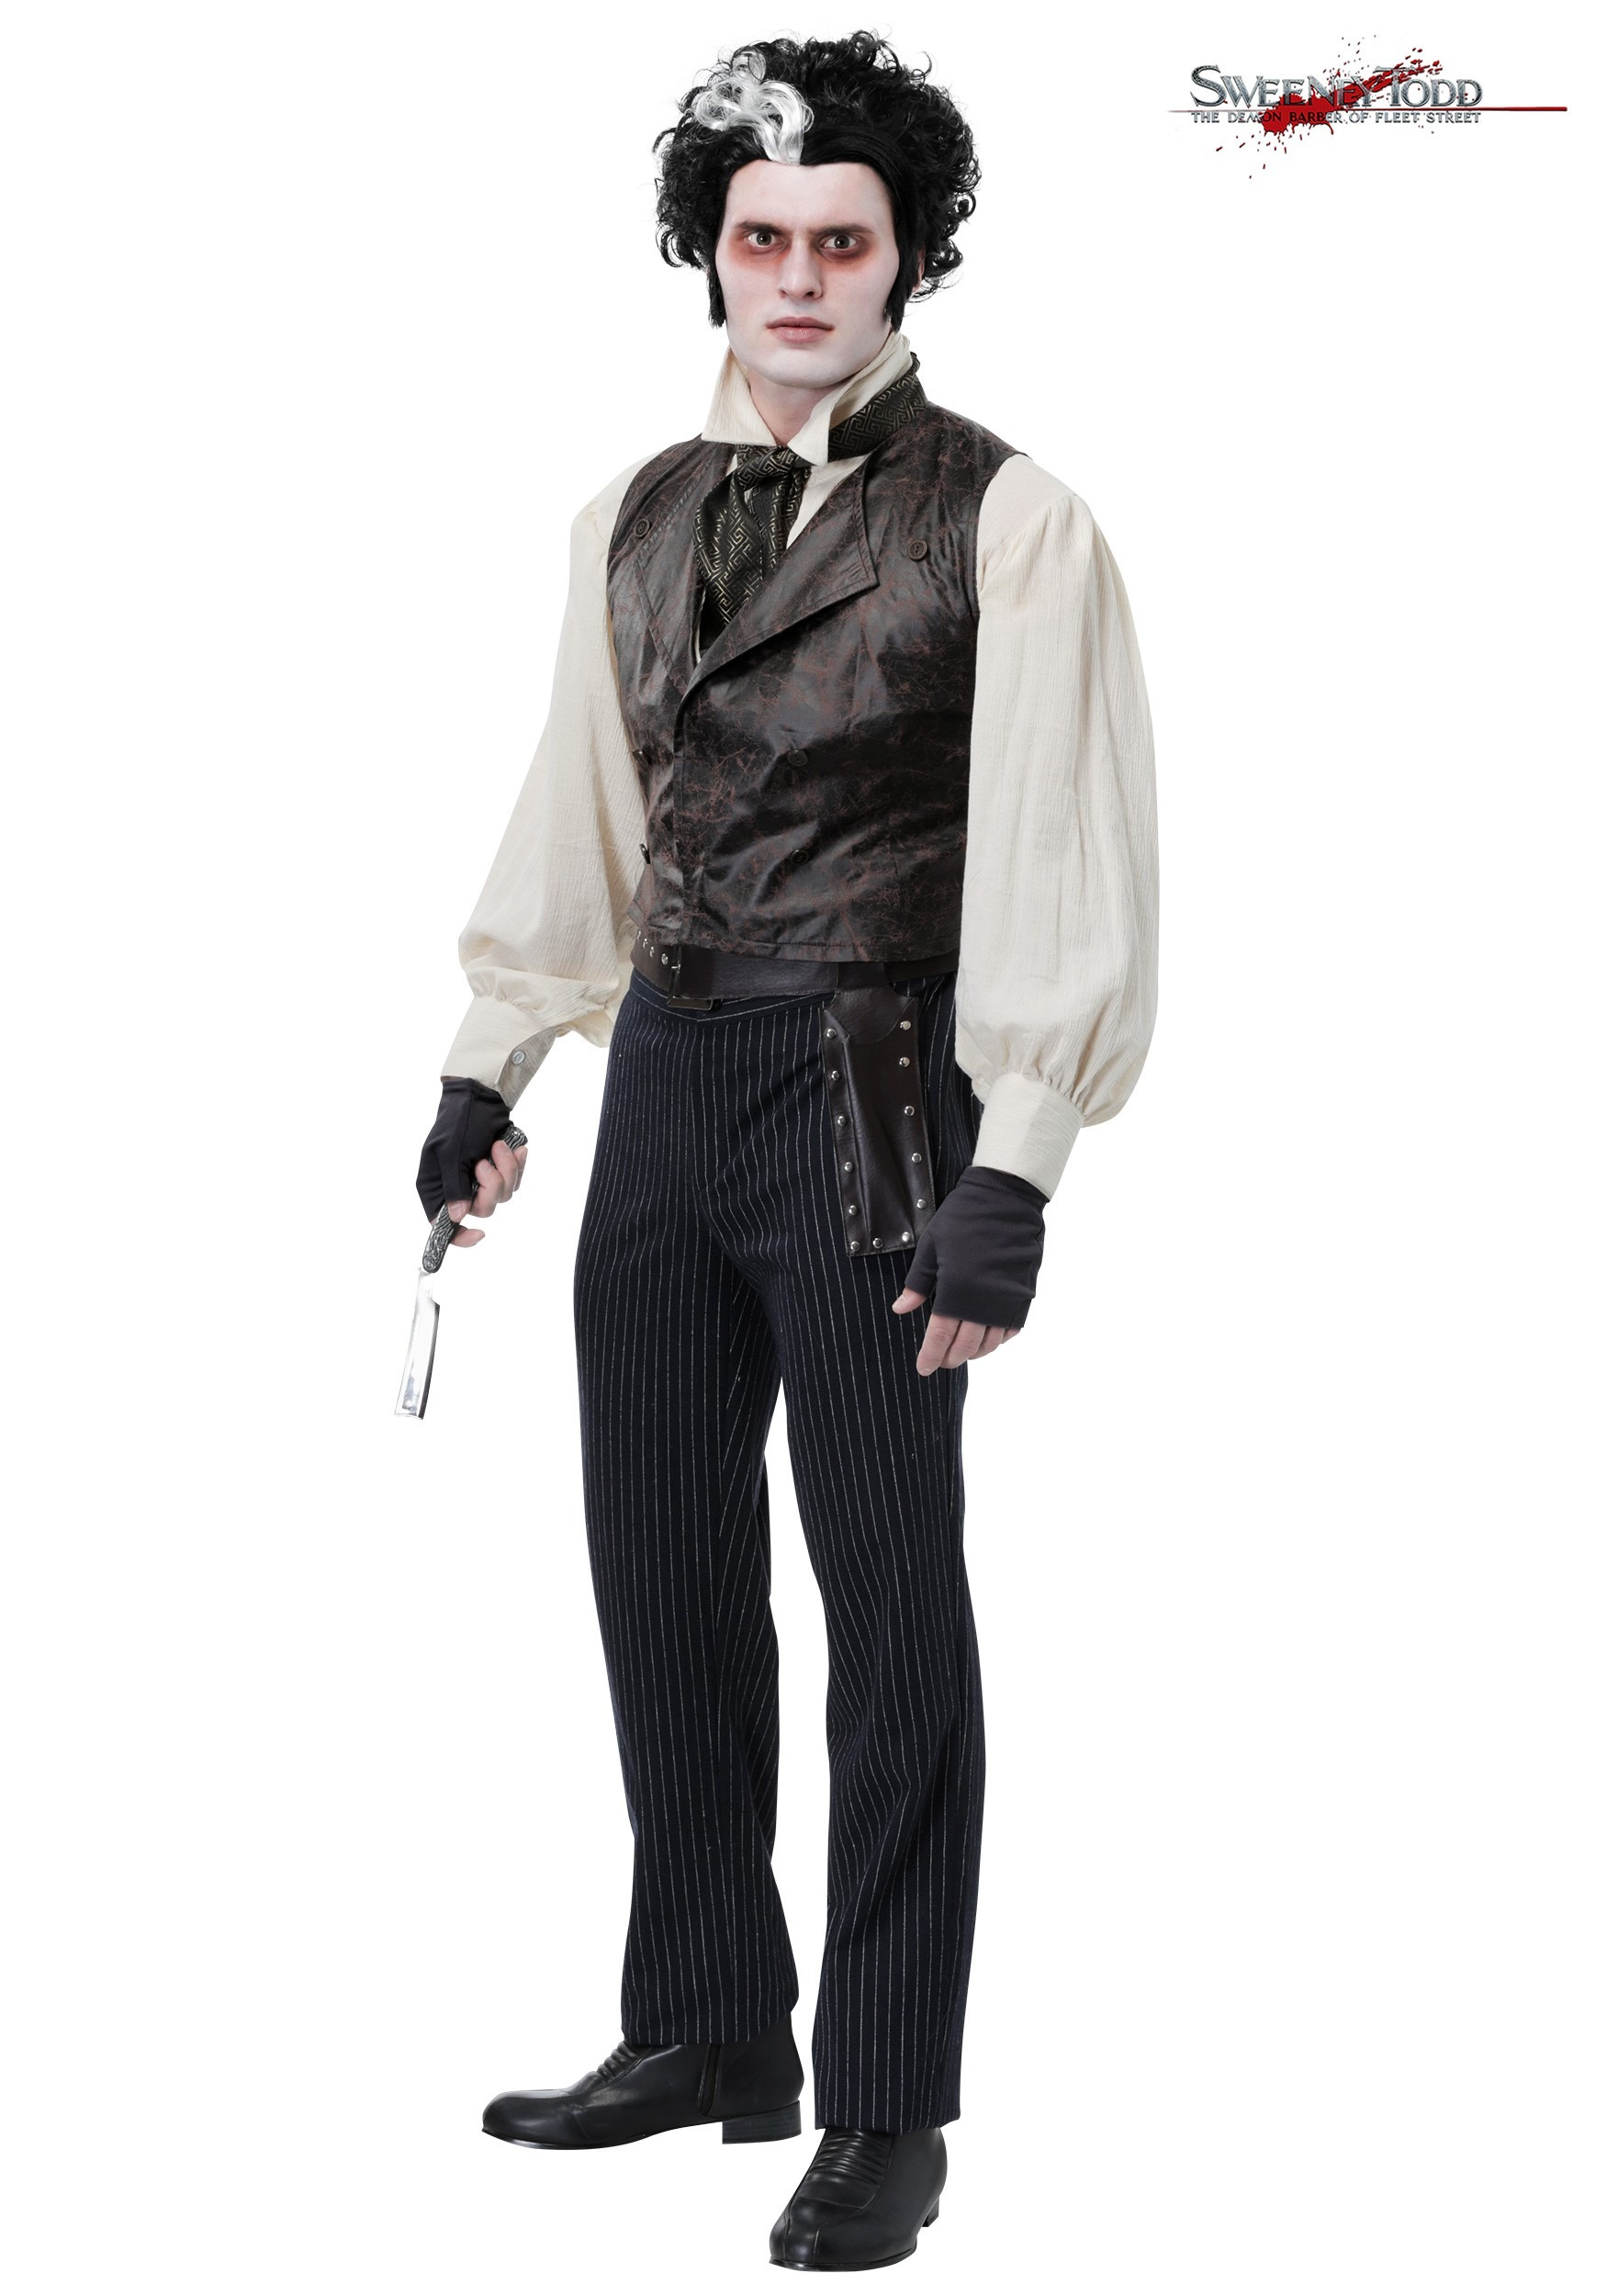 Sweeney Todd Costume For Men